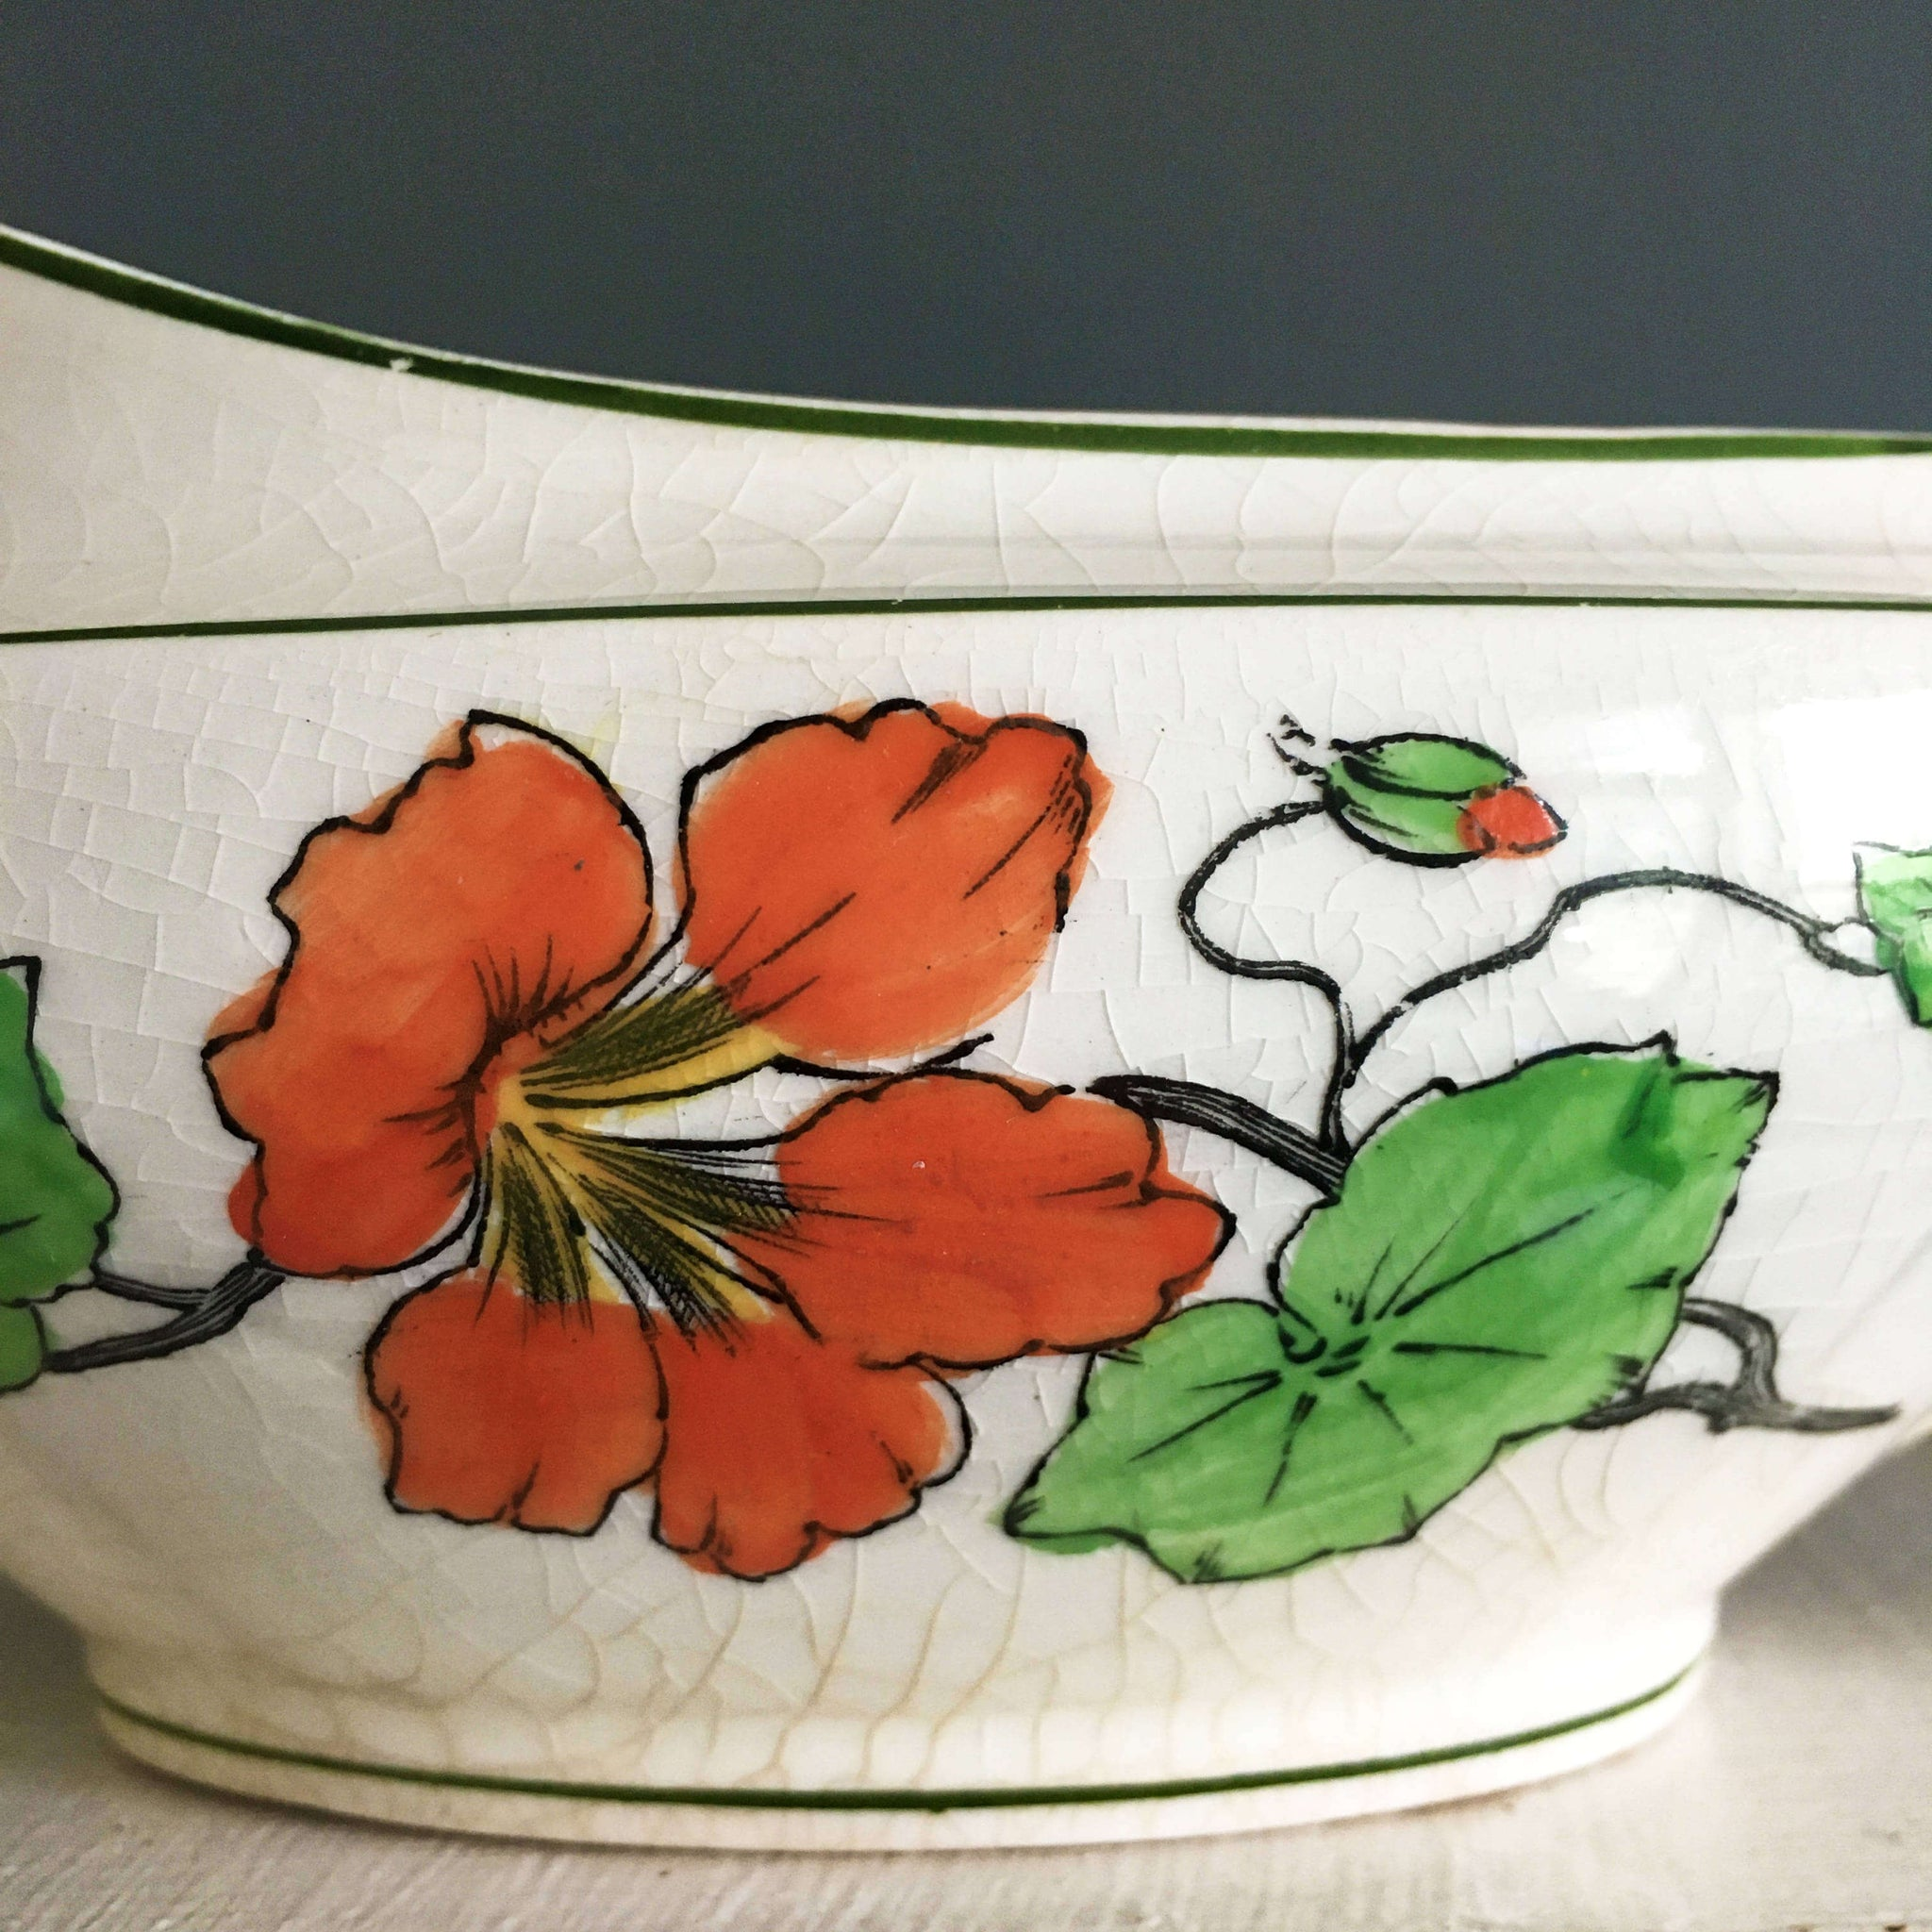 Vintage 1920's Gravy Boat - WH Grindley England Lichfield Pattern - Nasturtium Flowers Orange & Yellow